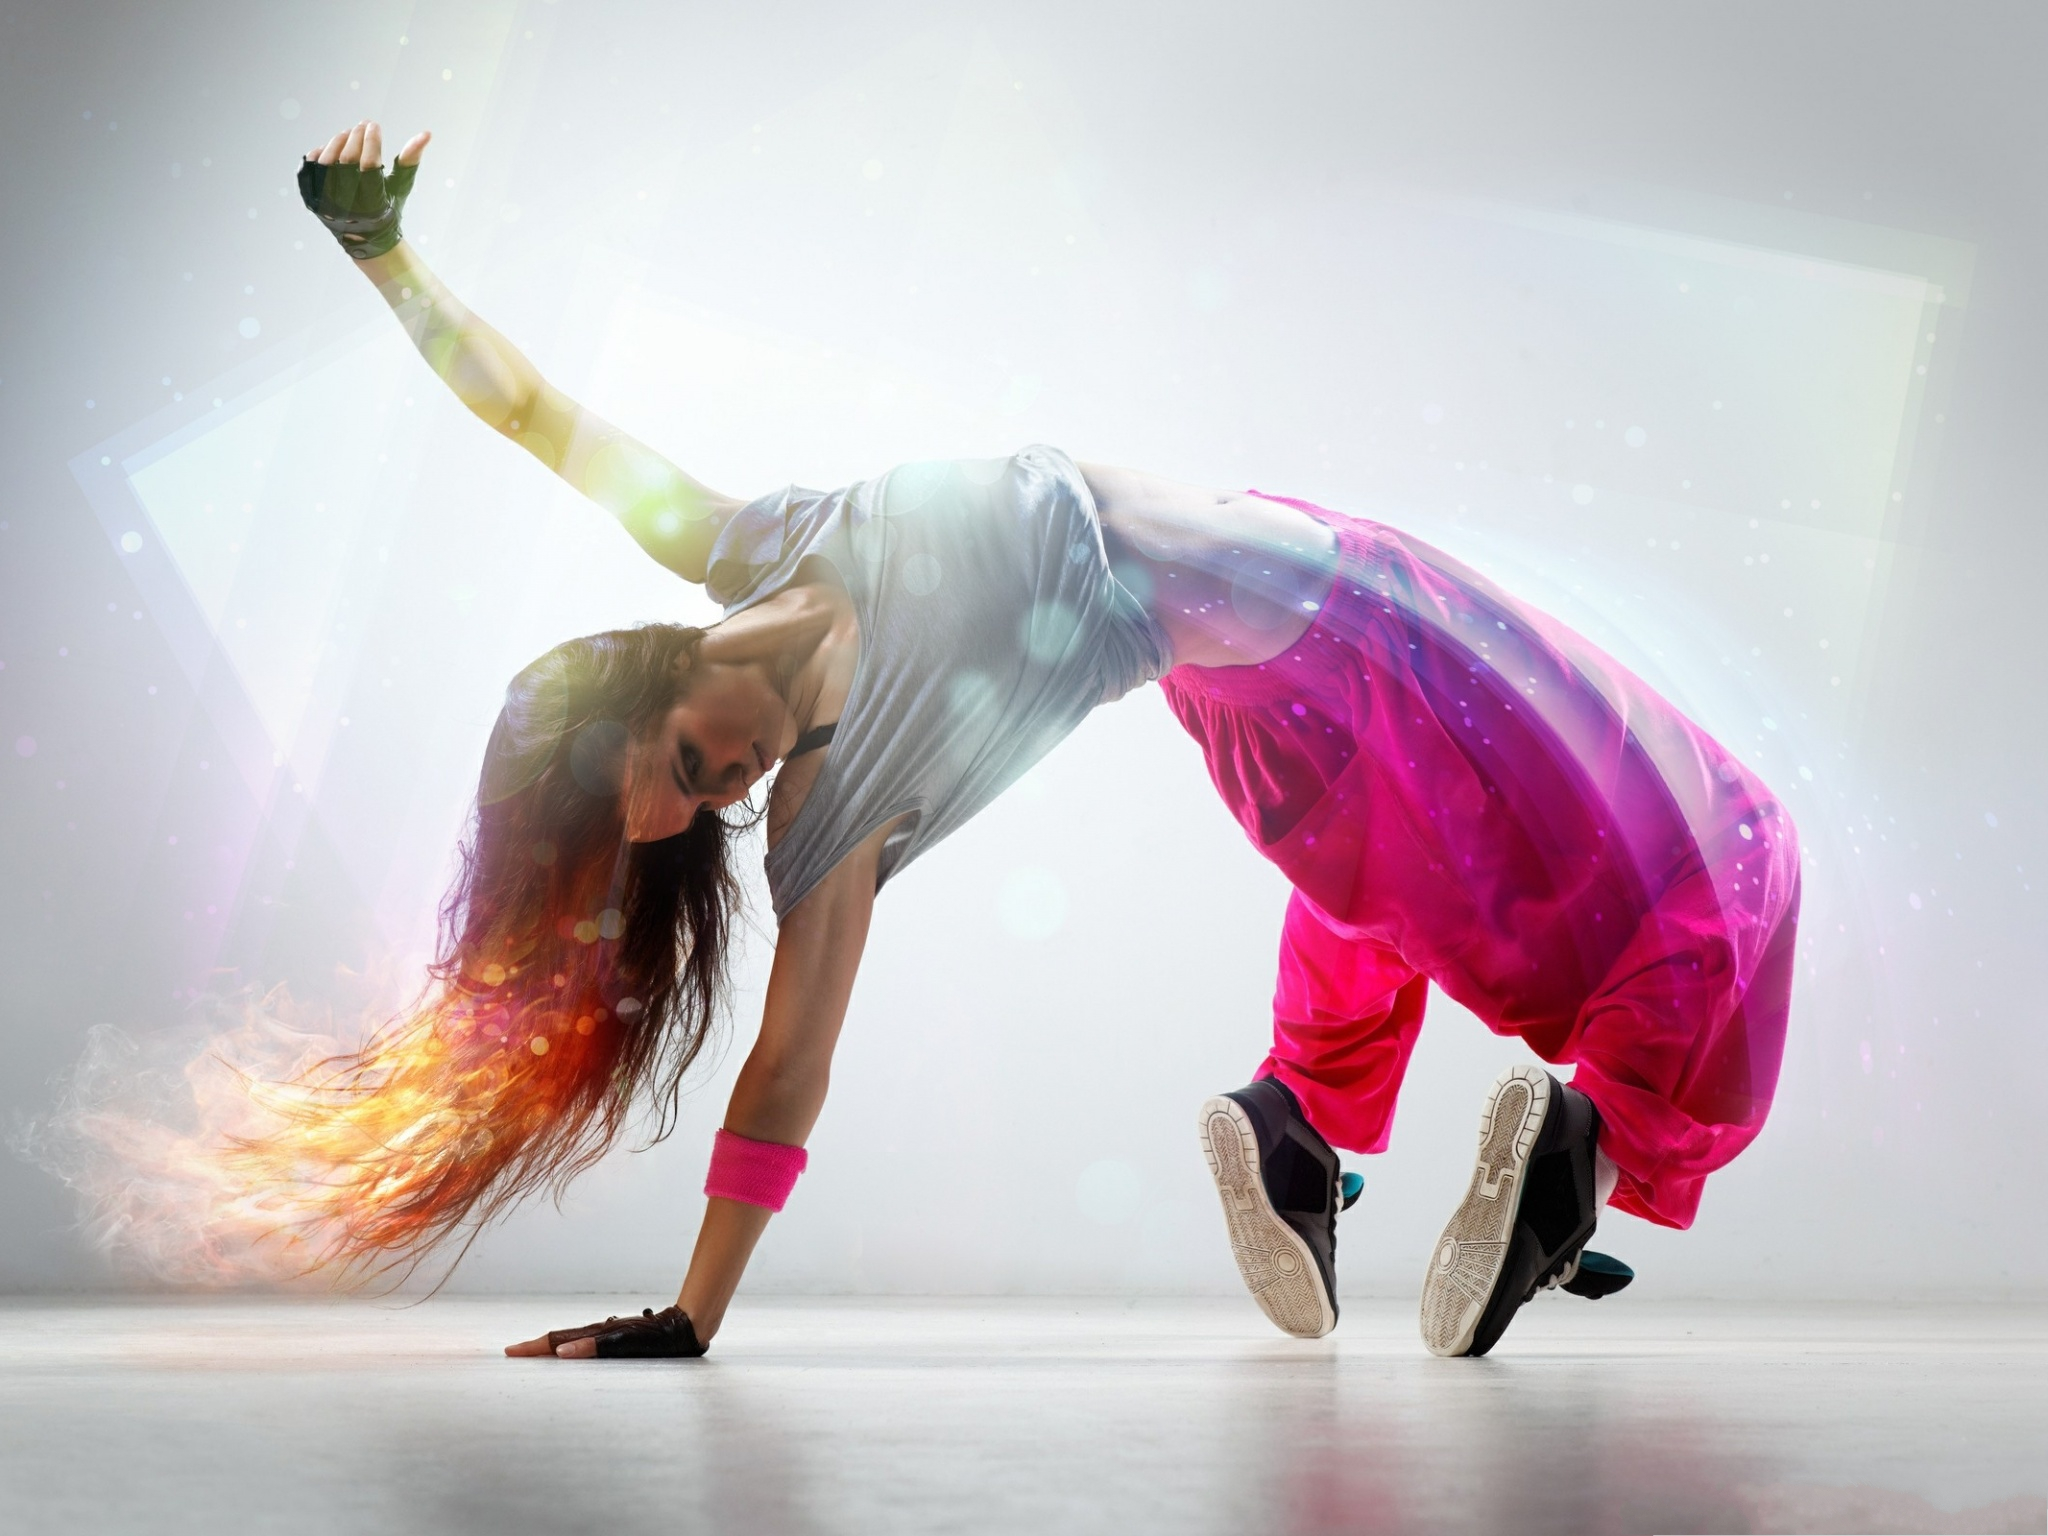 click to free download the wallpaper--Breakdance Girl Photography, Cool Girl in Dancing, Firing Hair 2048X1536 free wallpaper download